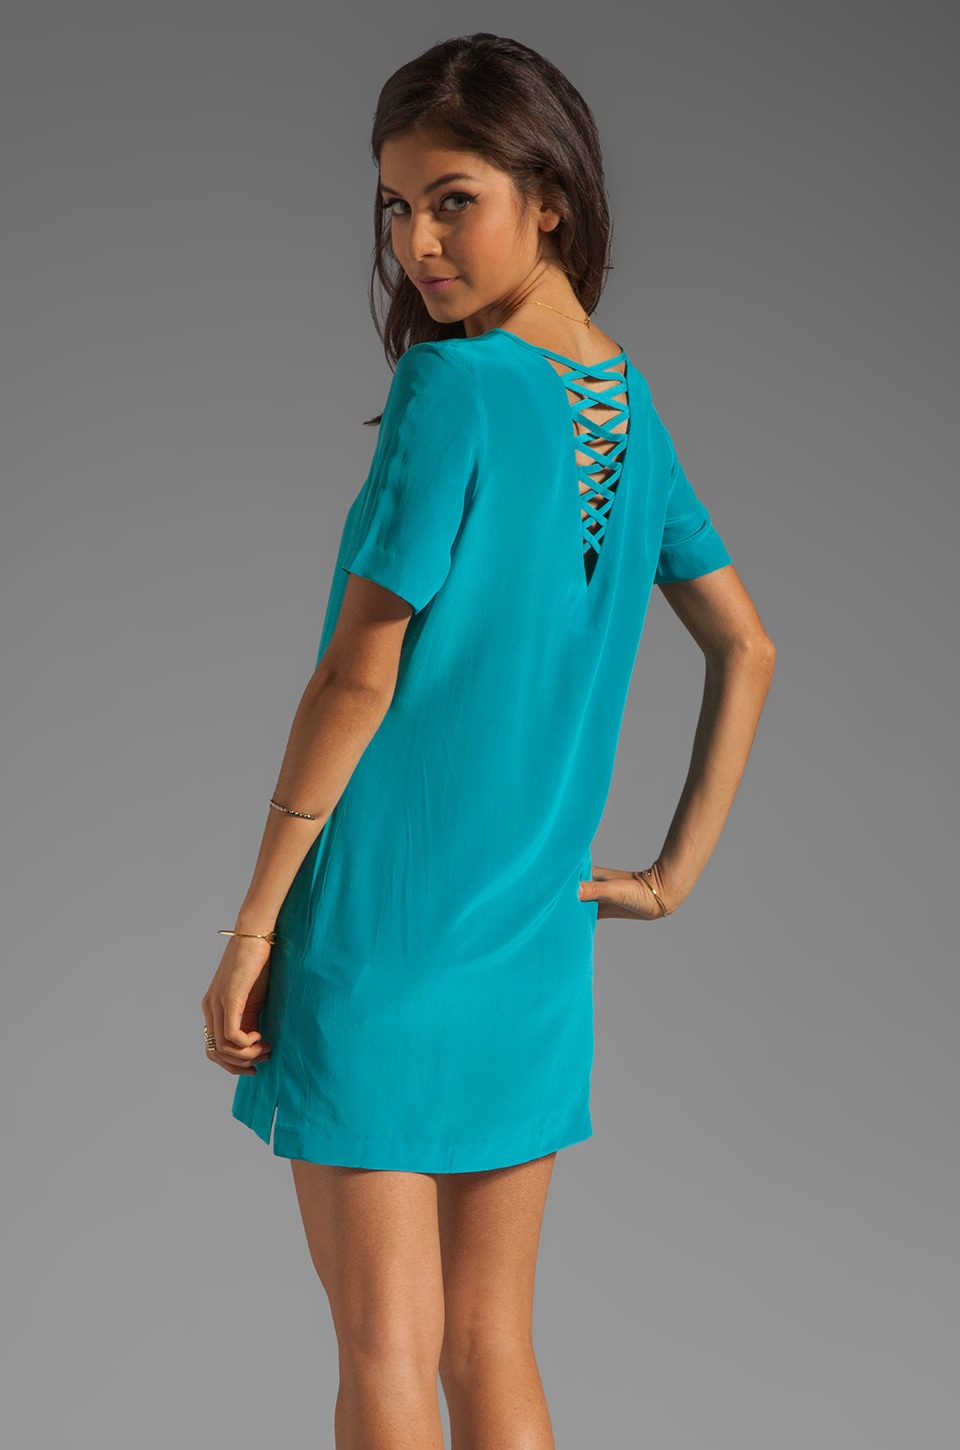 Something Else by Natalie Wood Silk Tee Dress in Aqua